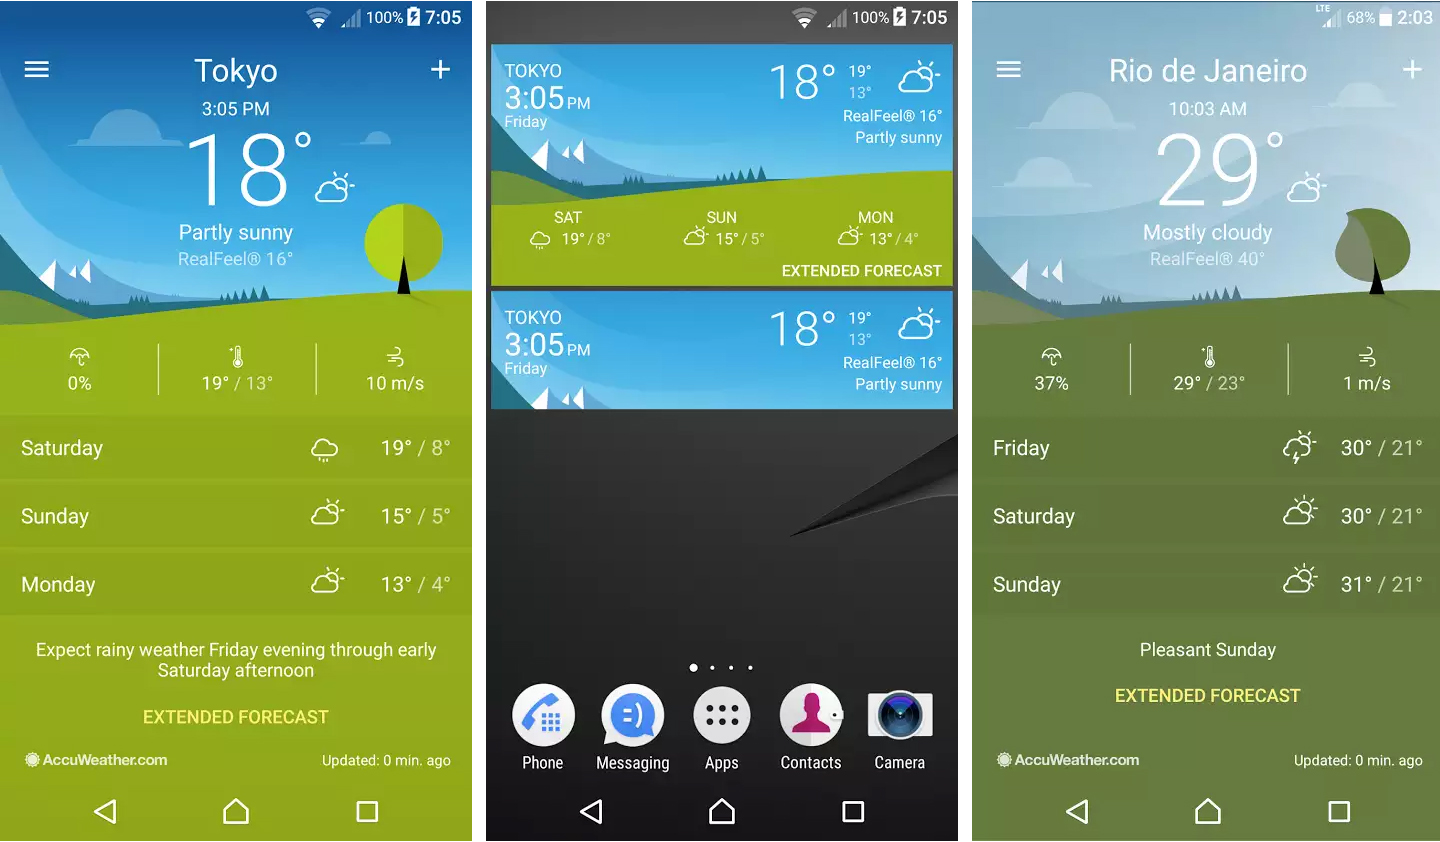 Sony Xperia Weather 1.1.A.0.40 app update